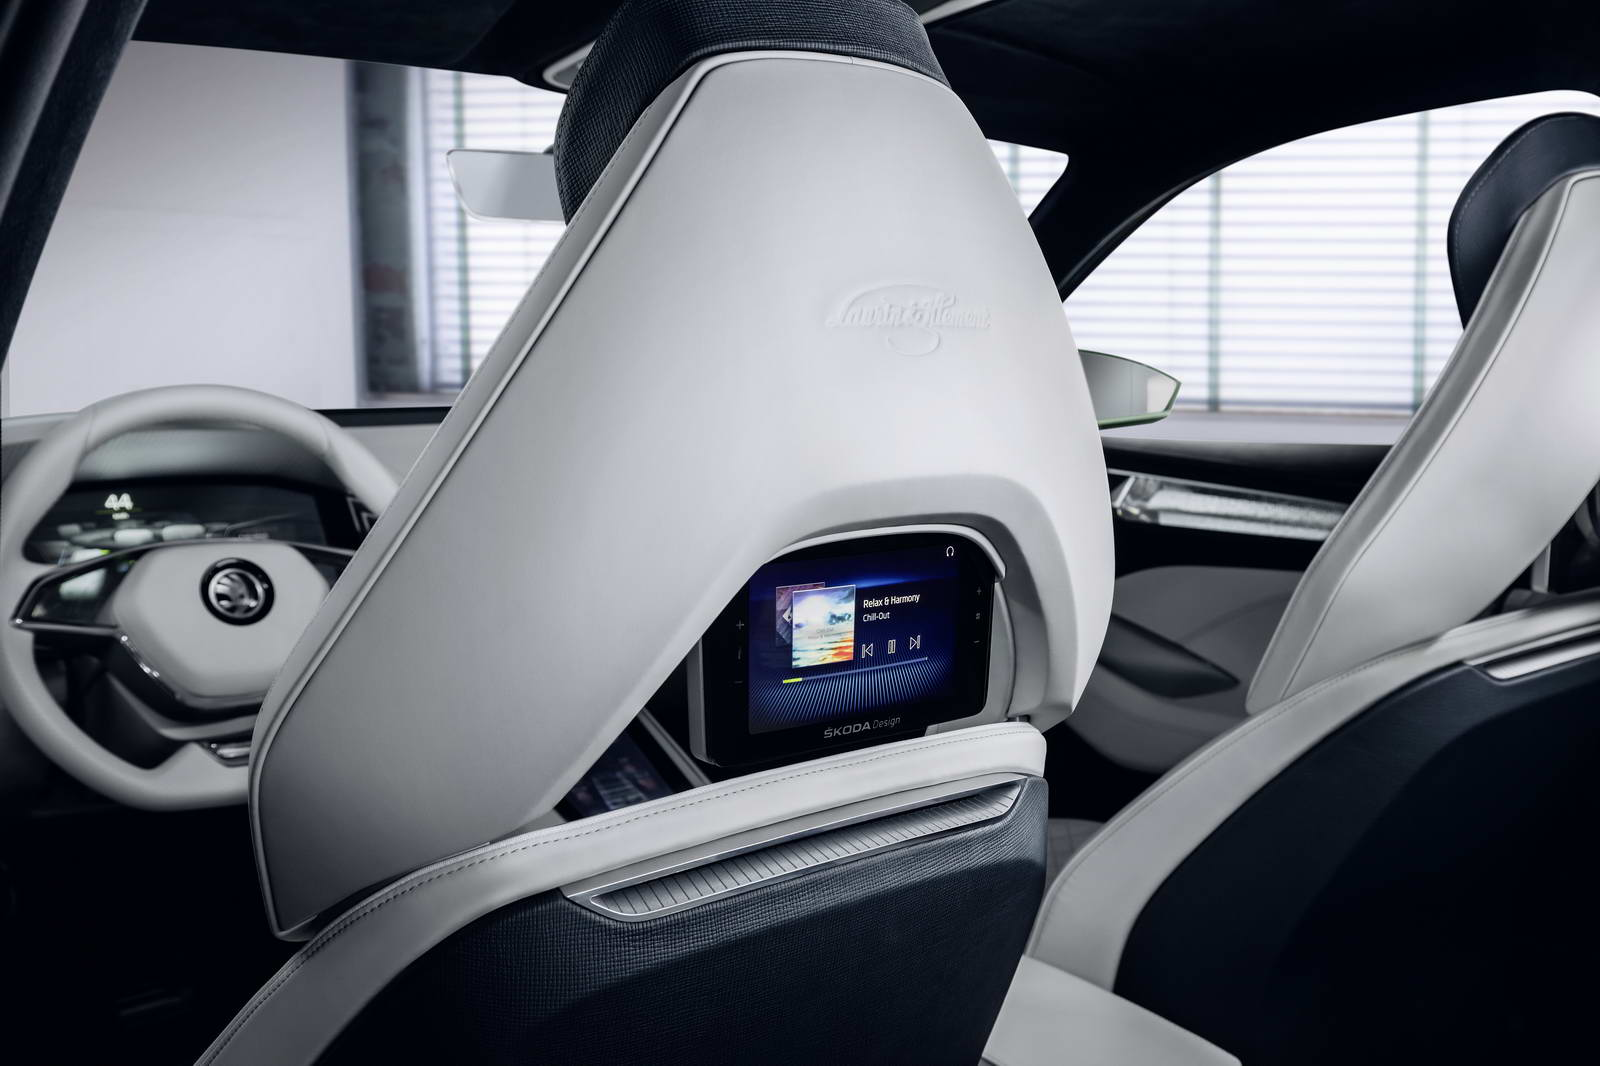 Skoda 39 s visions suv concept mixes rationality and aesthetics for Auto interieur styling